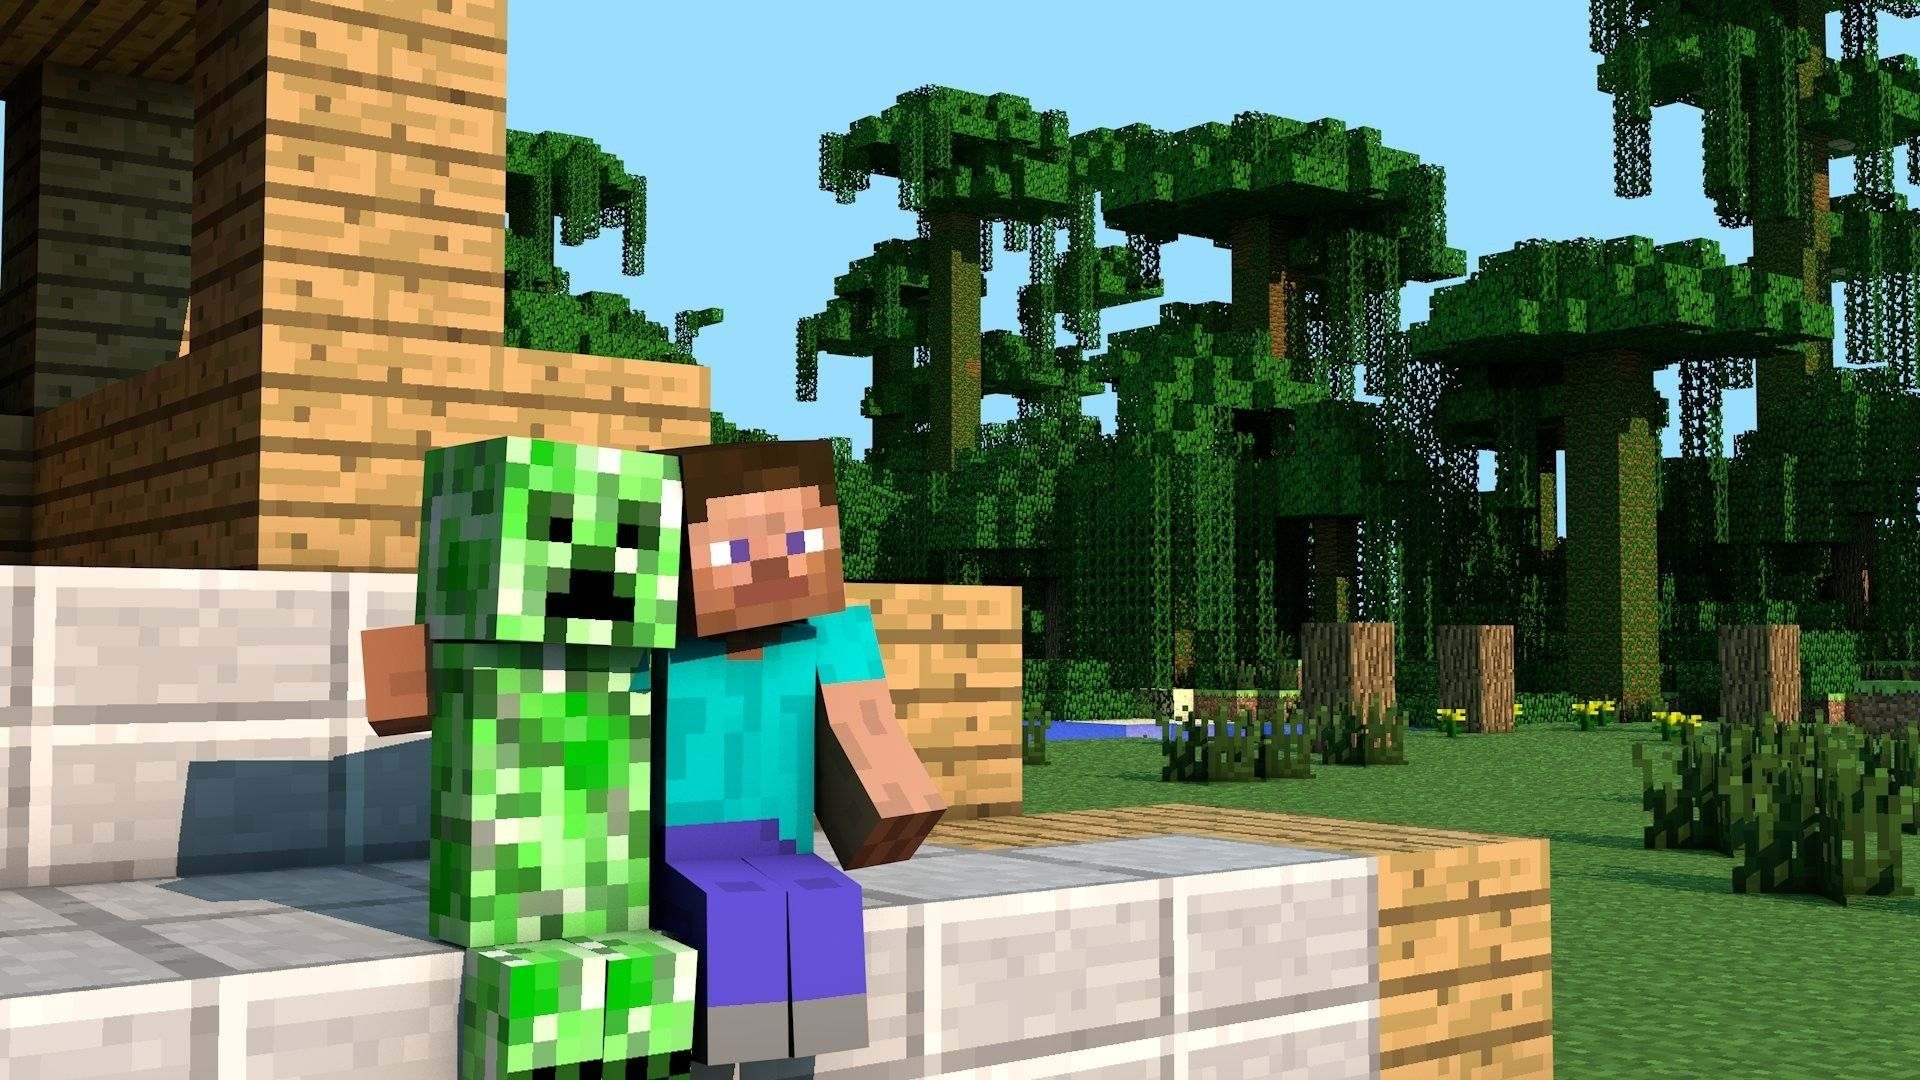 Creeper Steve Minecraft Background Hd Wallpaper With Images